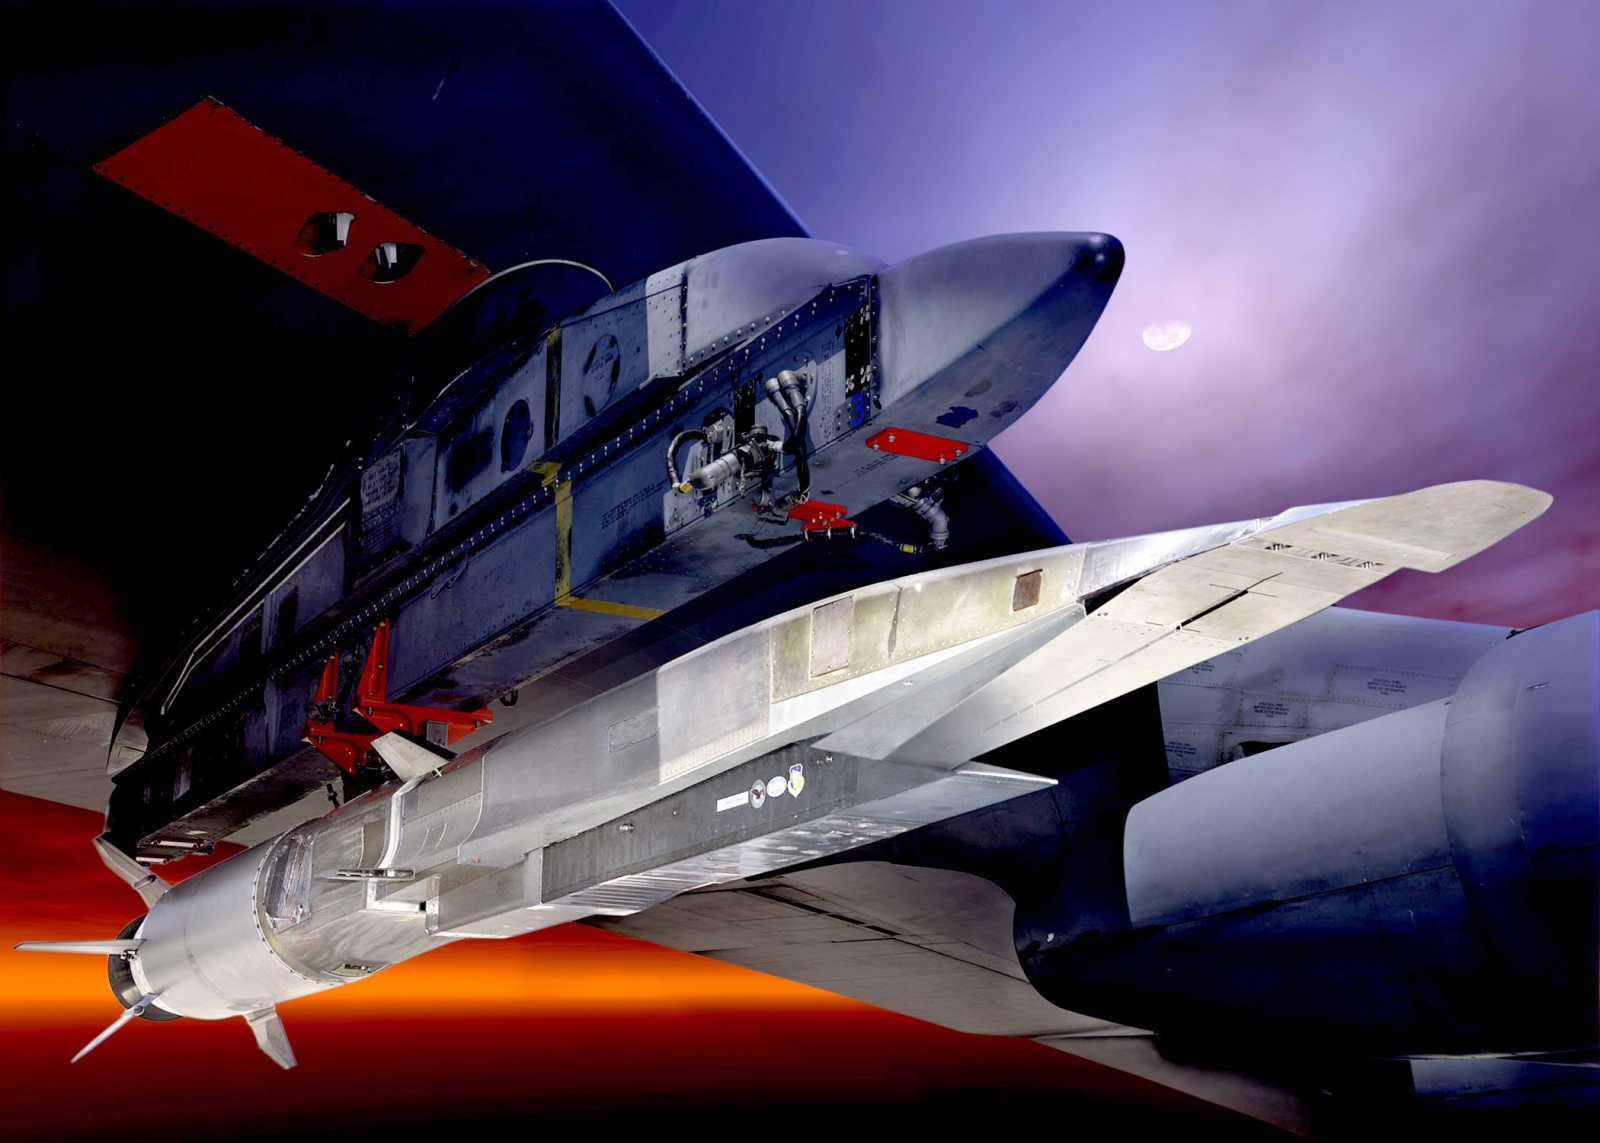 X-51 Waverider hypersonic attached to B-52 Bomber